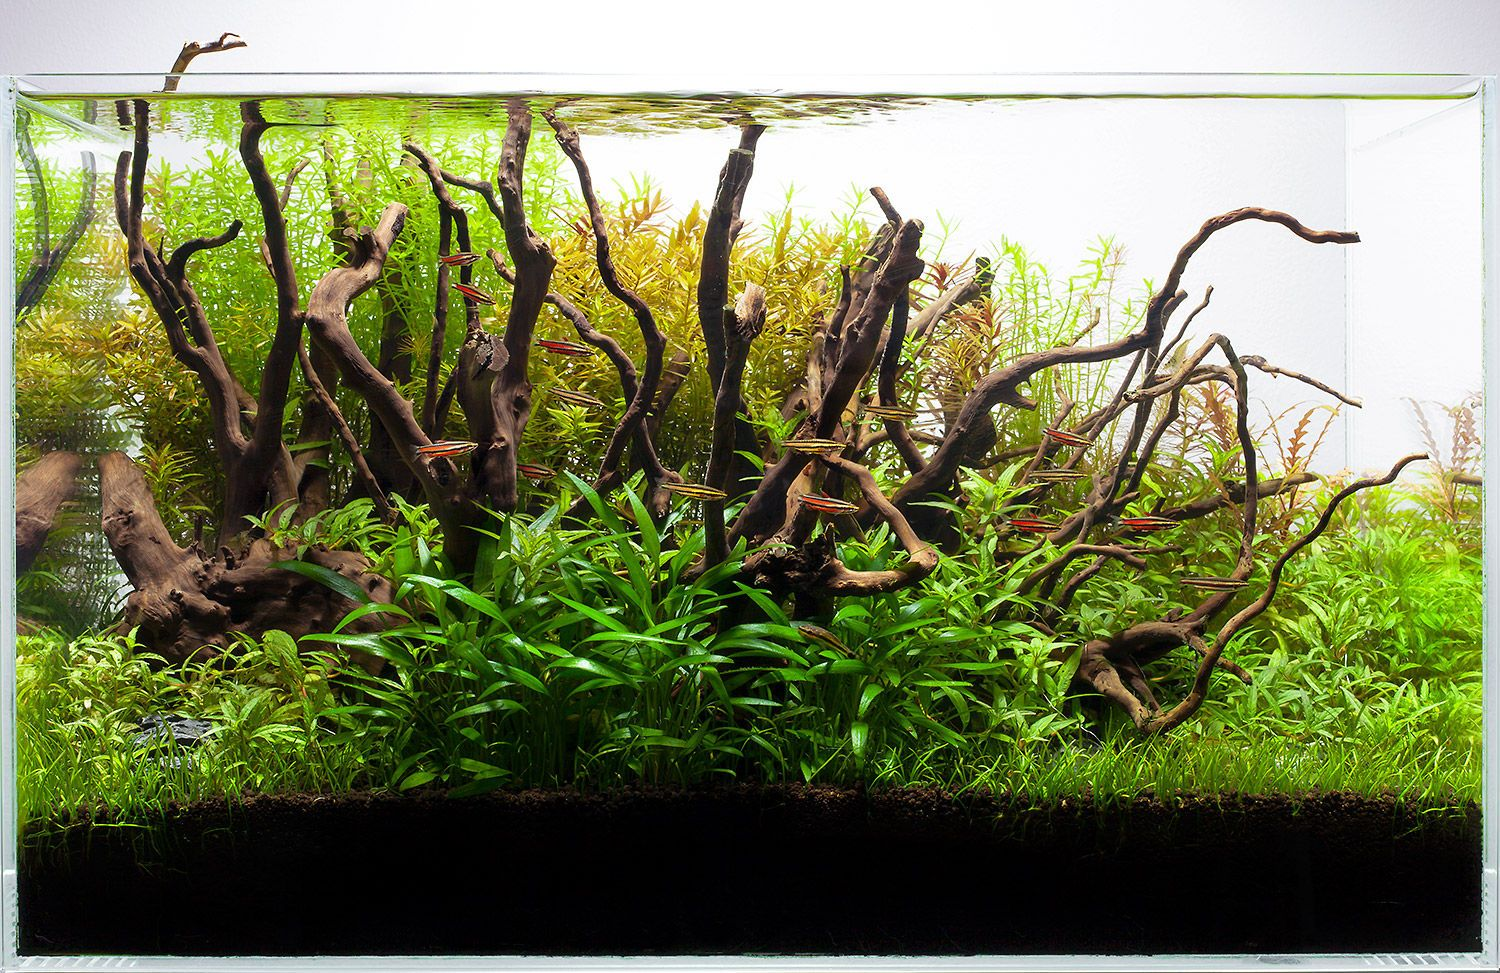 Freshwater aquarium fish houston - Aquarium Design Group Is The Premiere Source For Custom Aquarium Design Installation And Service Maintenance In Houston Texas And Beyond